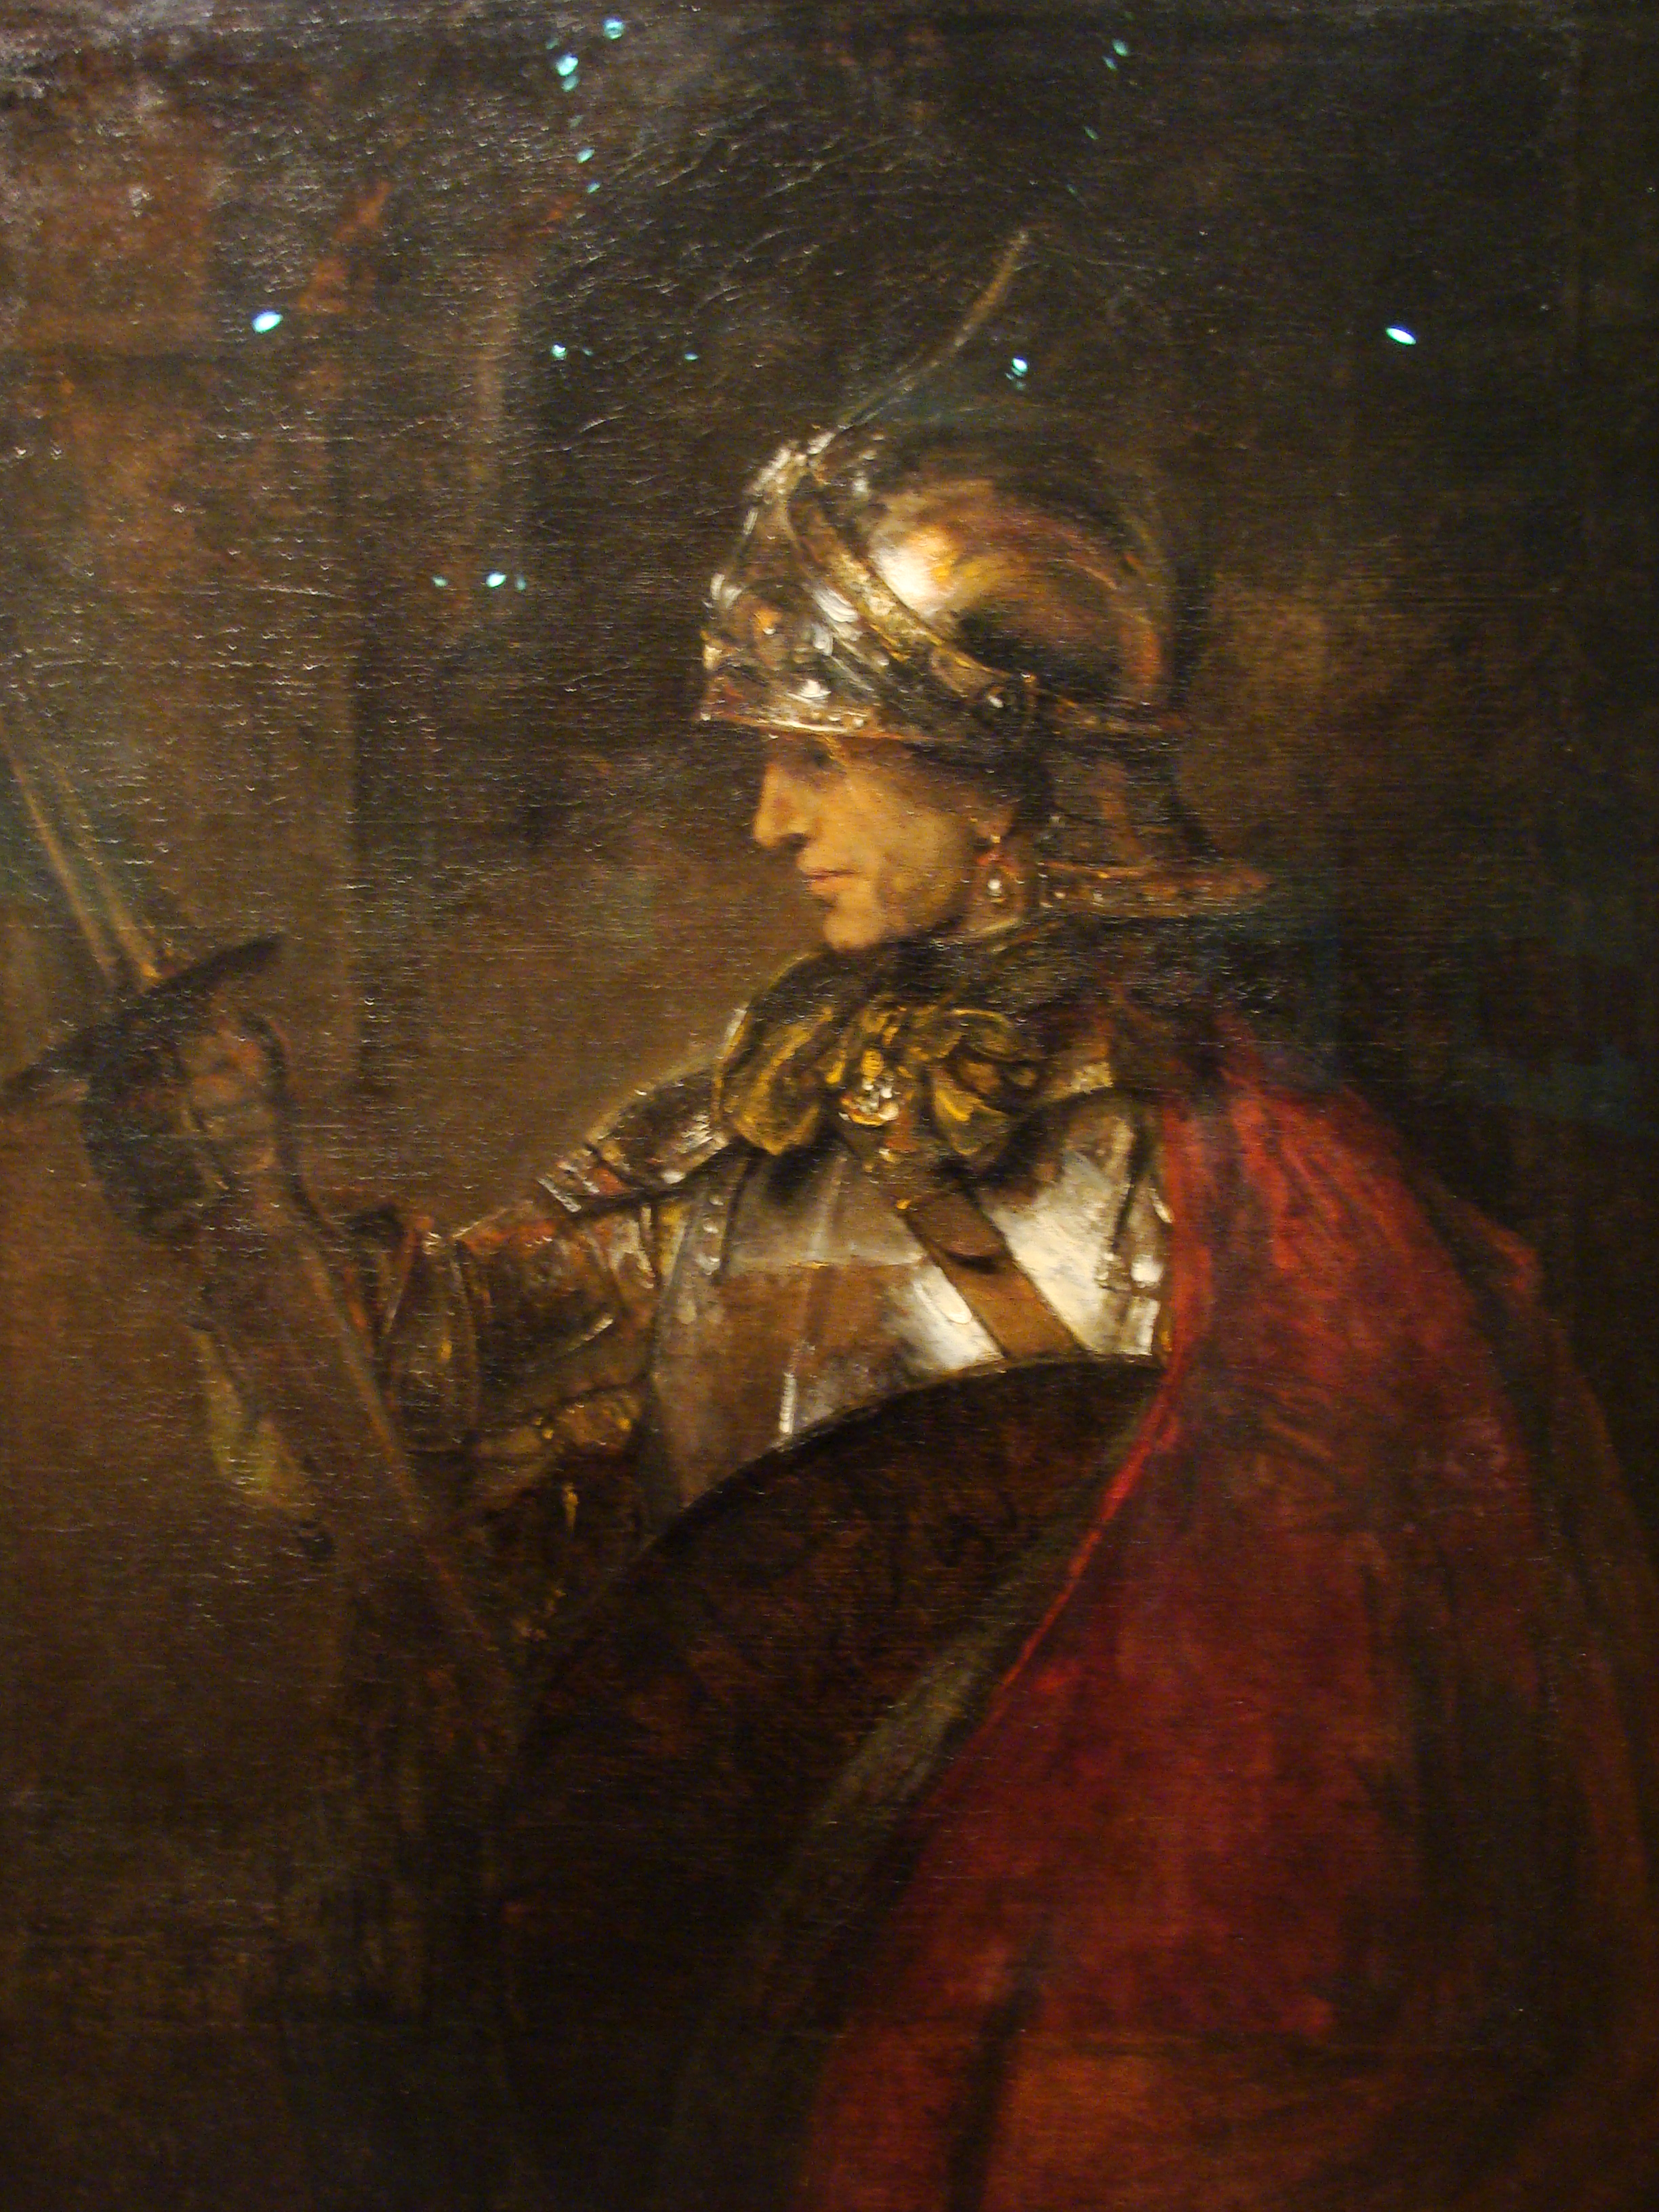 Rembrandt Painting Of Man In Armour Possibly Alexander